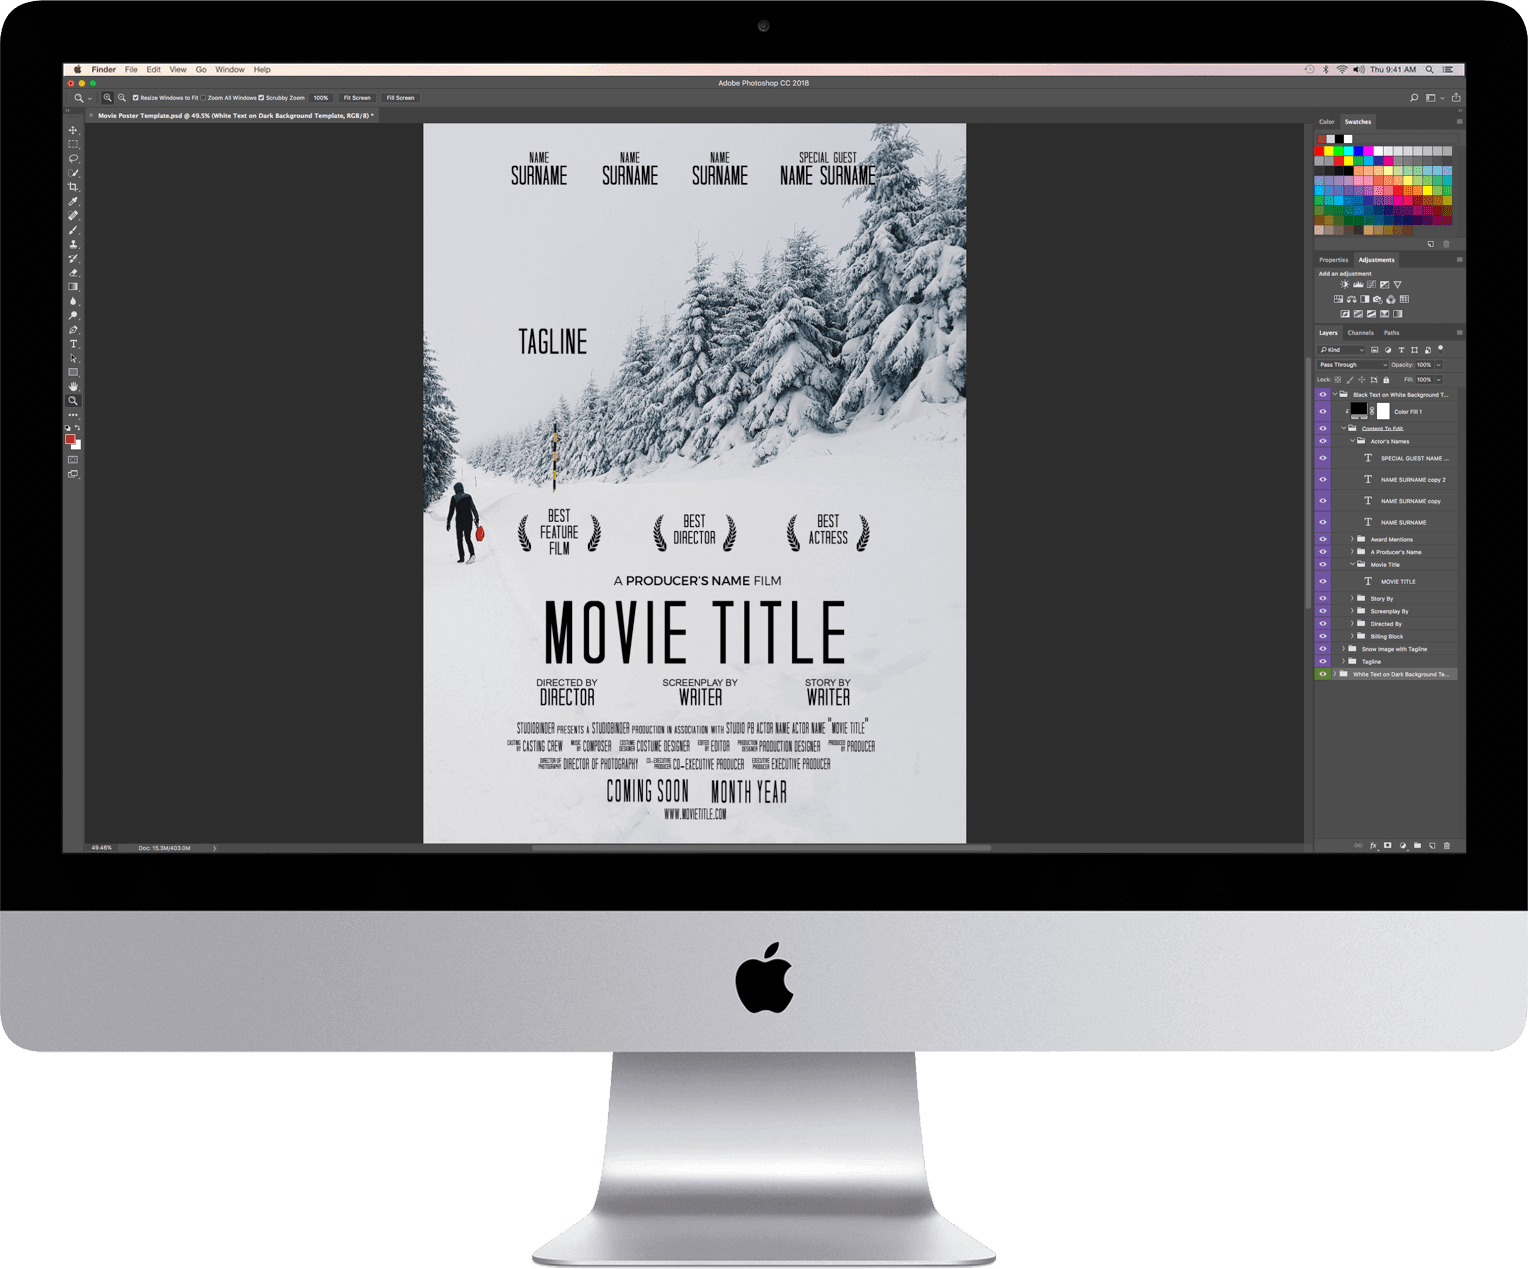 Free Movie Poster Template - Adobe Photoshop